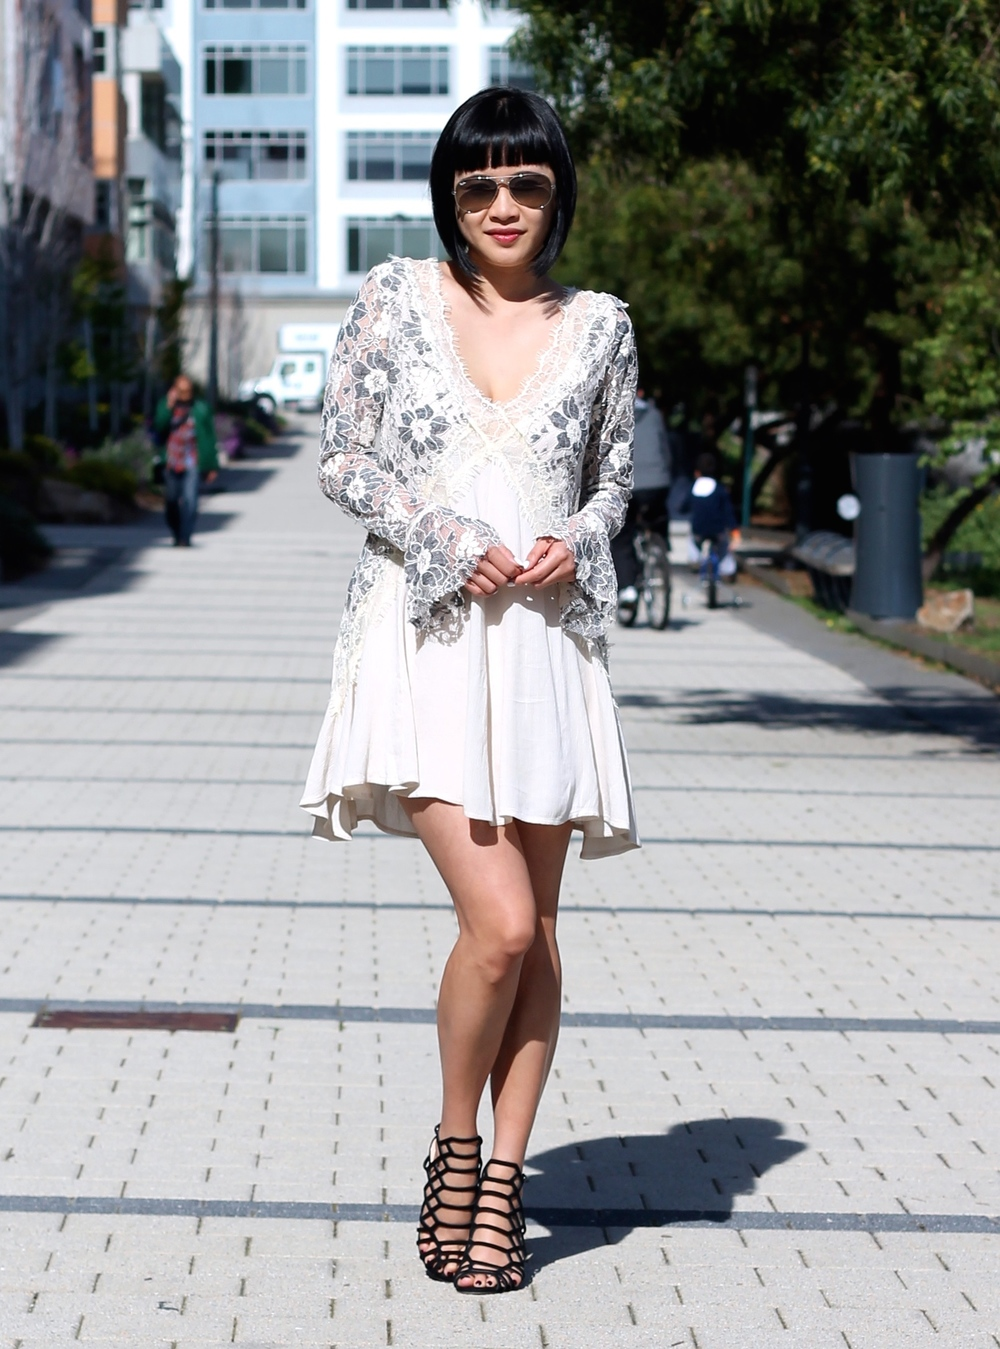 Tularosa dress, Vince Camuto heels, Ray Ban sunglasses